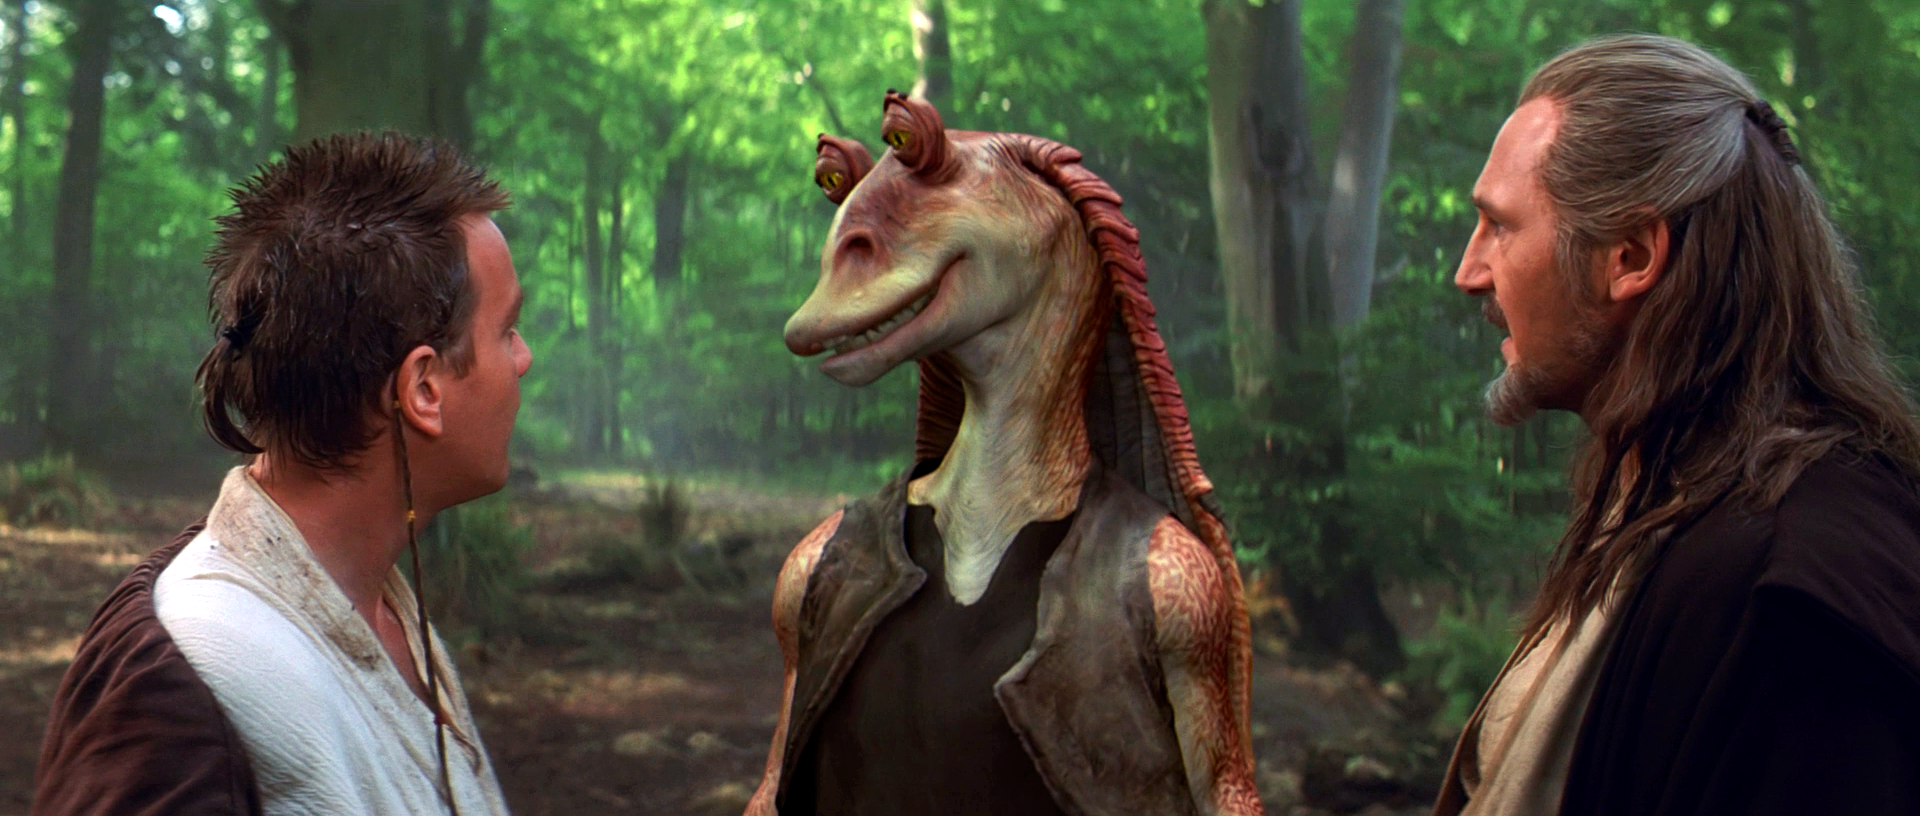 New Jar Jar Binks Solo Film in Development